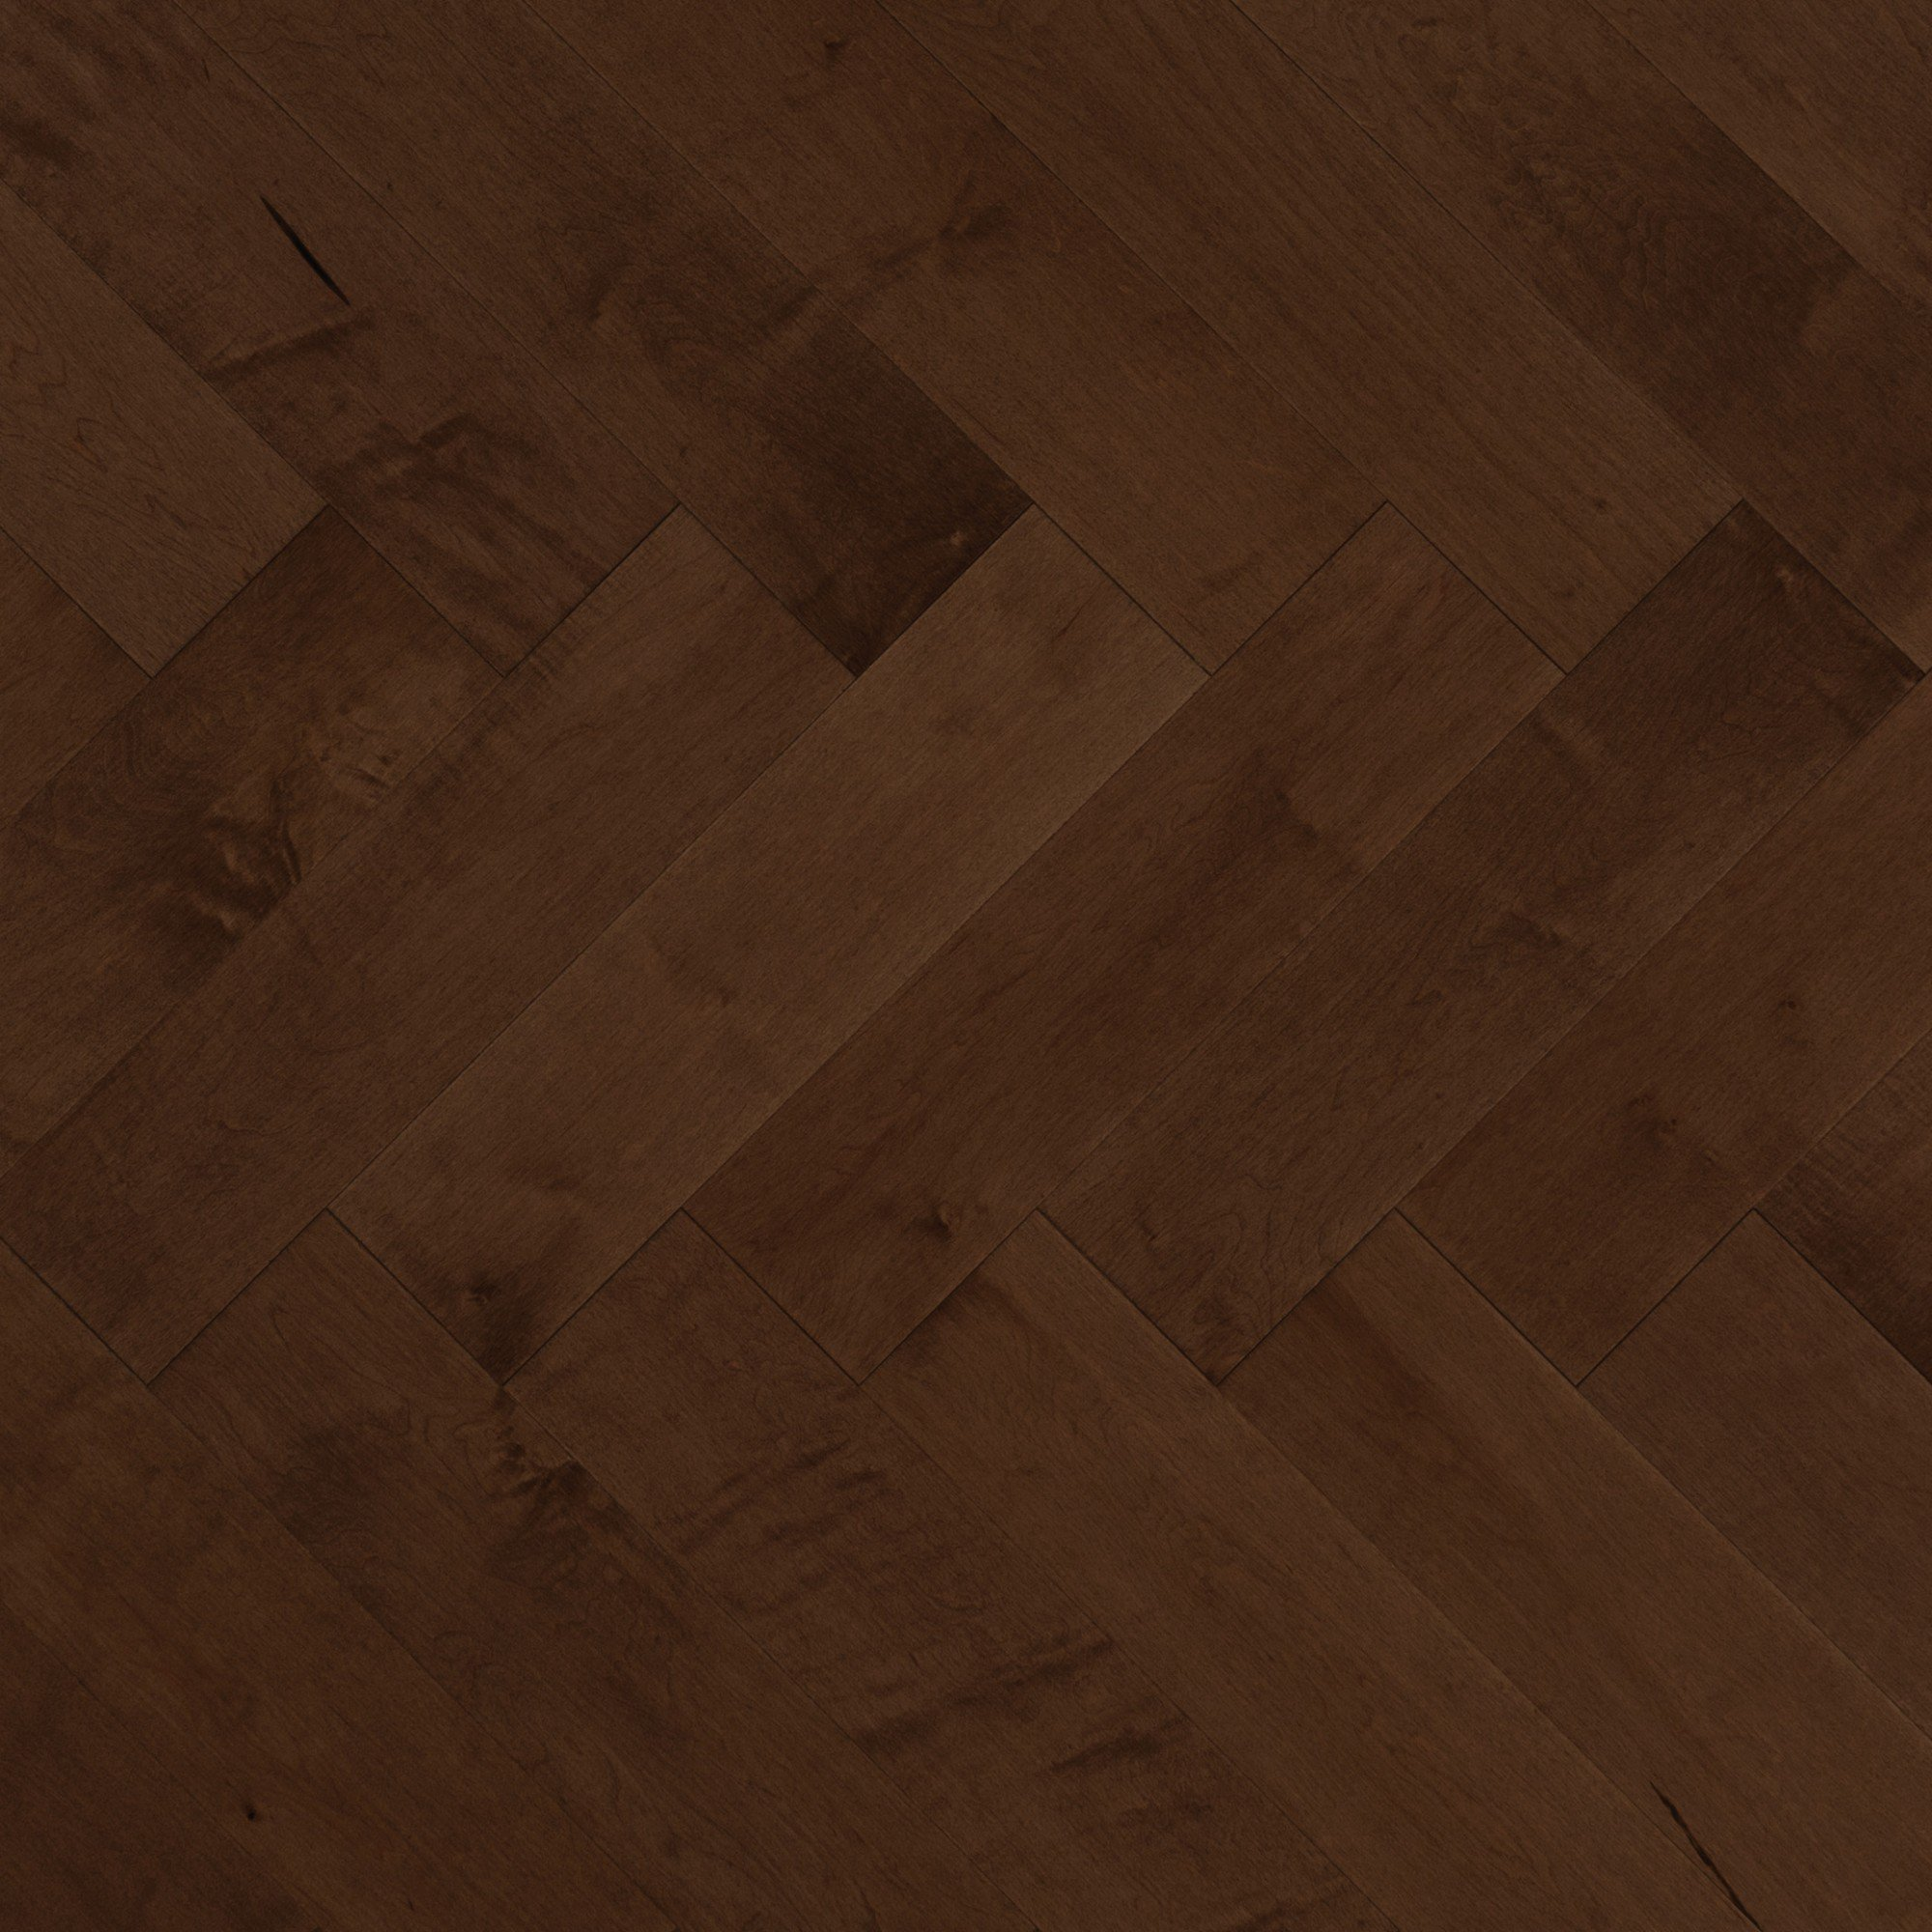 Maple Havana - Floor image